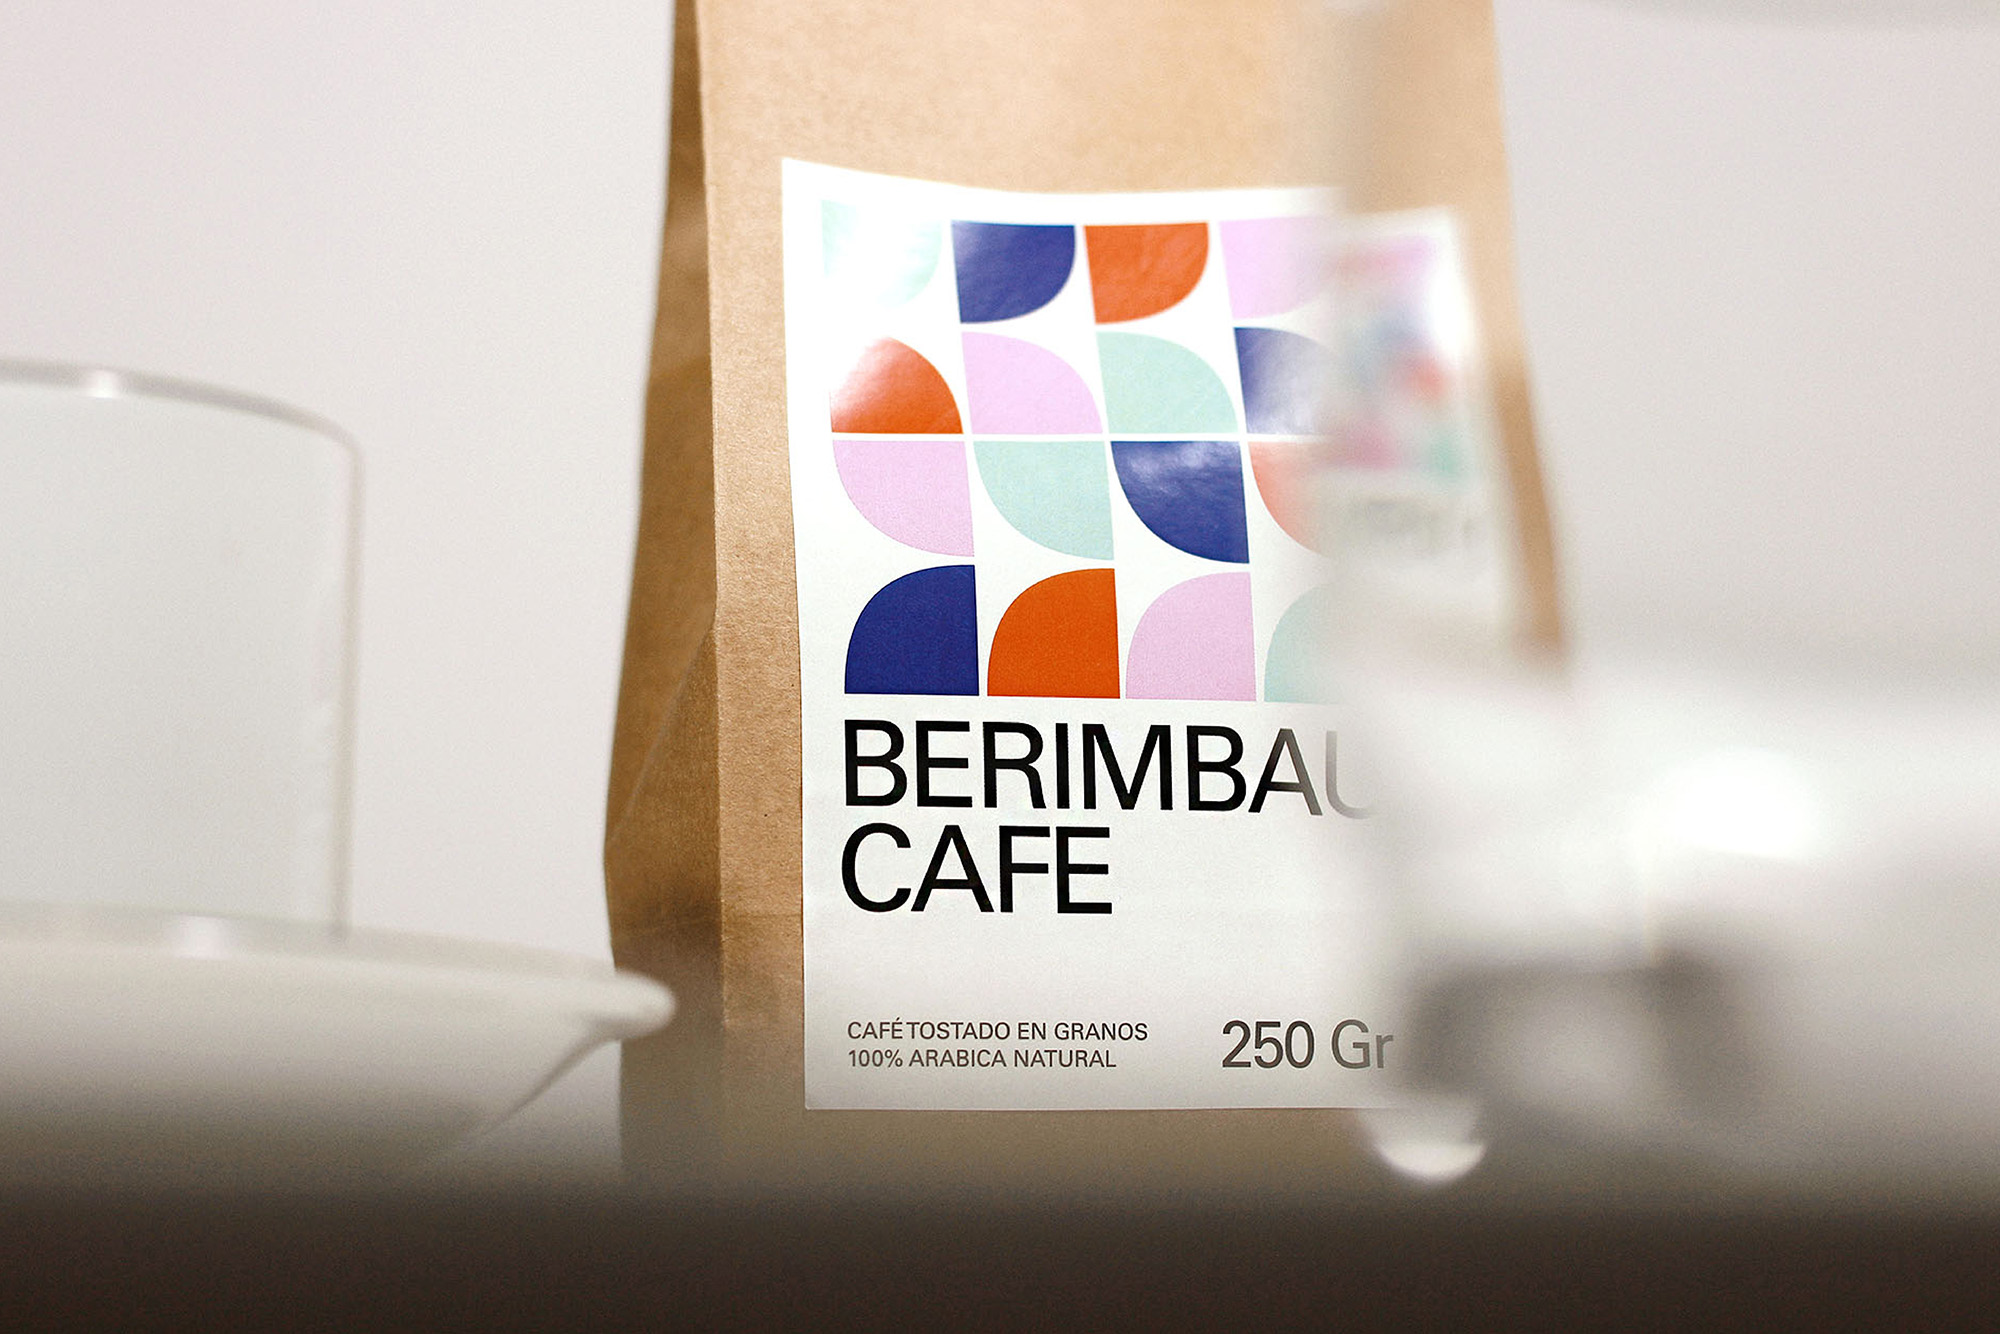 Berimbau Cafe Visual Identity